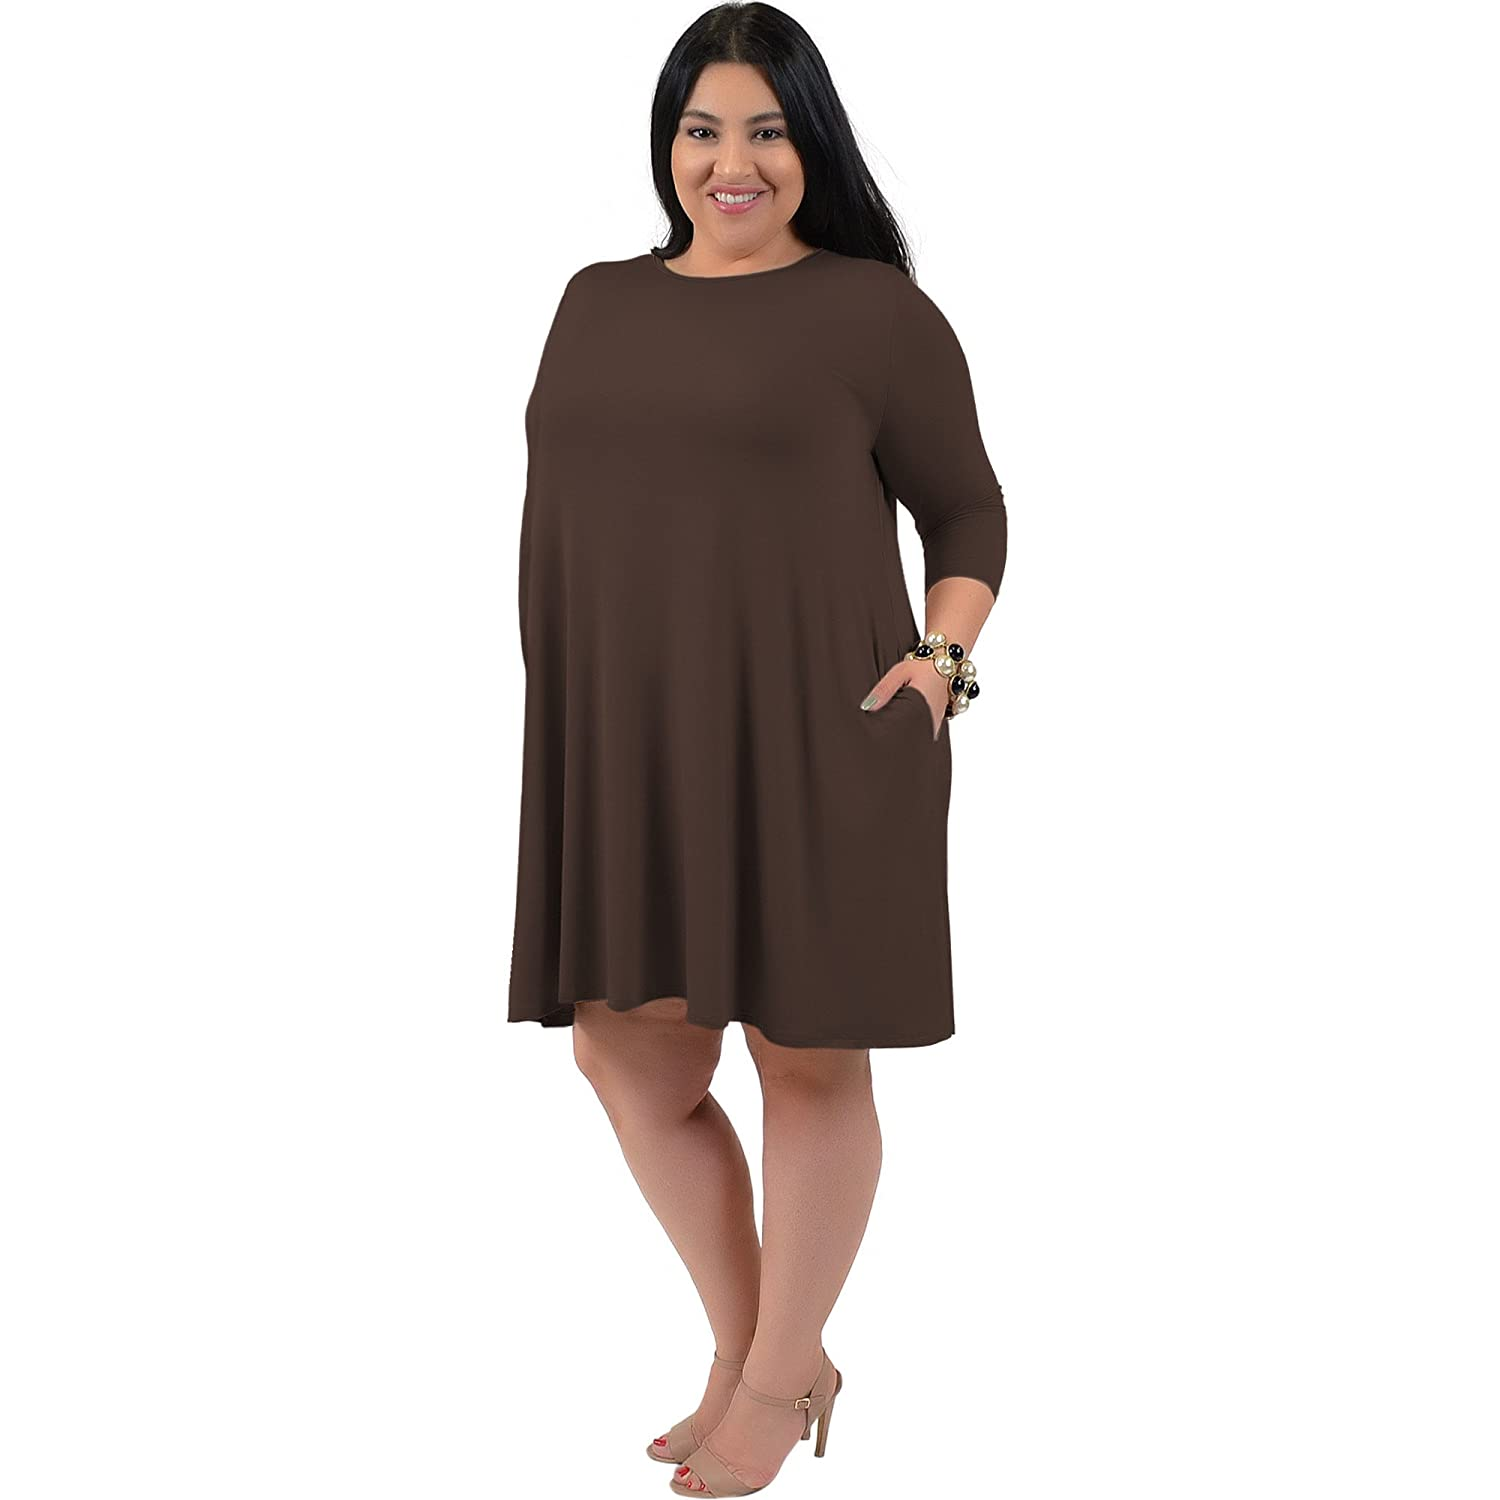 Stretch is fort Women s Plus Size ¾ Sleeve Pocket Flowy Trapeze Tunic Dress DRS649PS $P